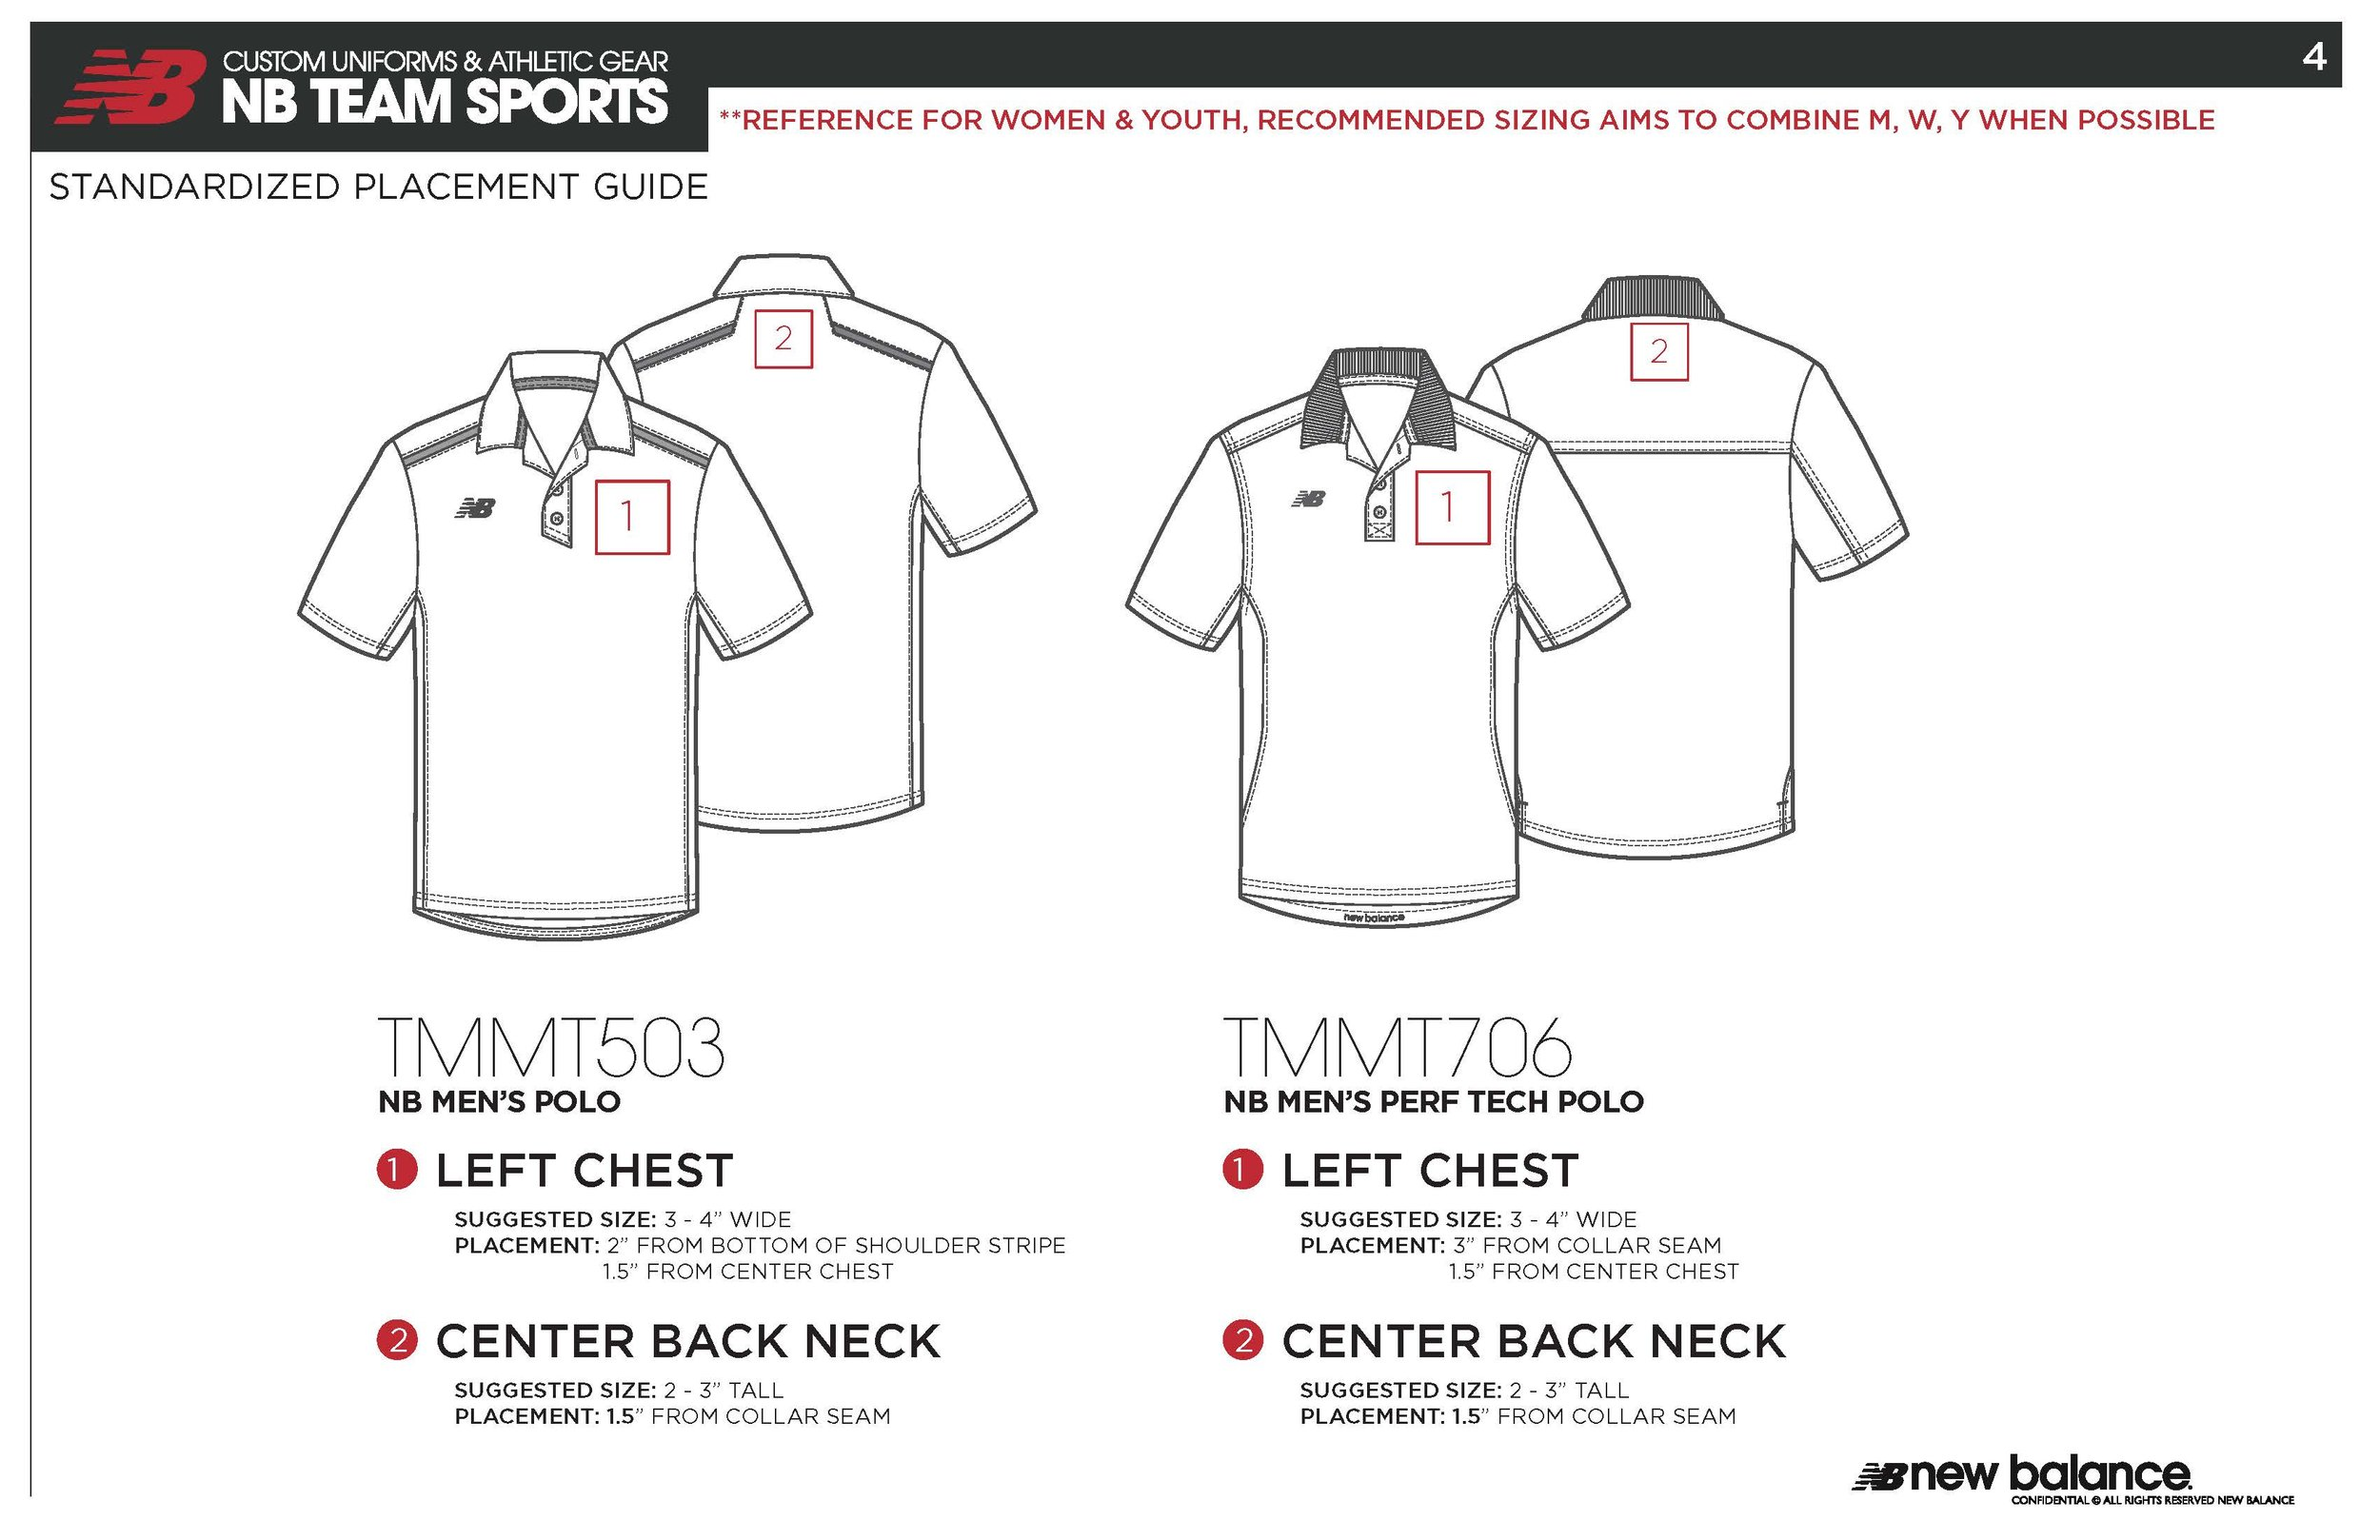 TEAMWEAR_Standardized Placement Guide Final_Page_4.jpg